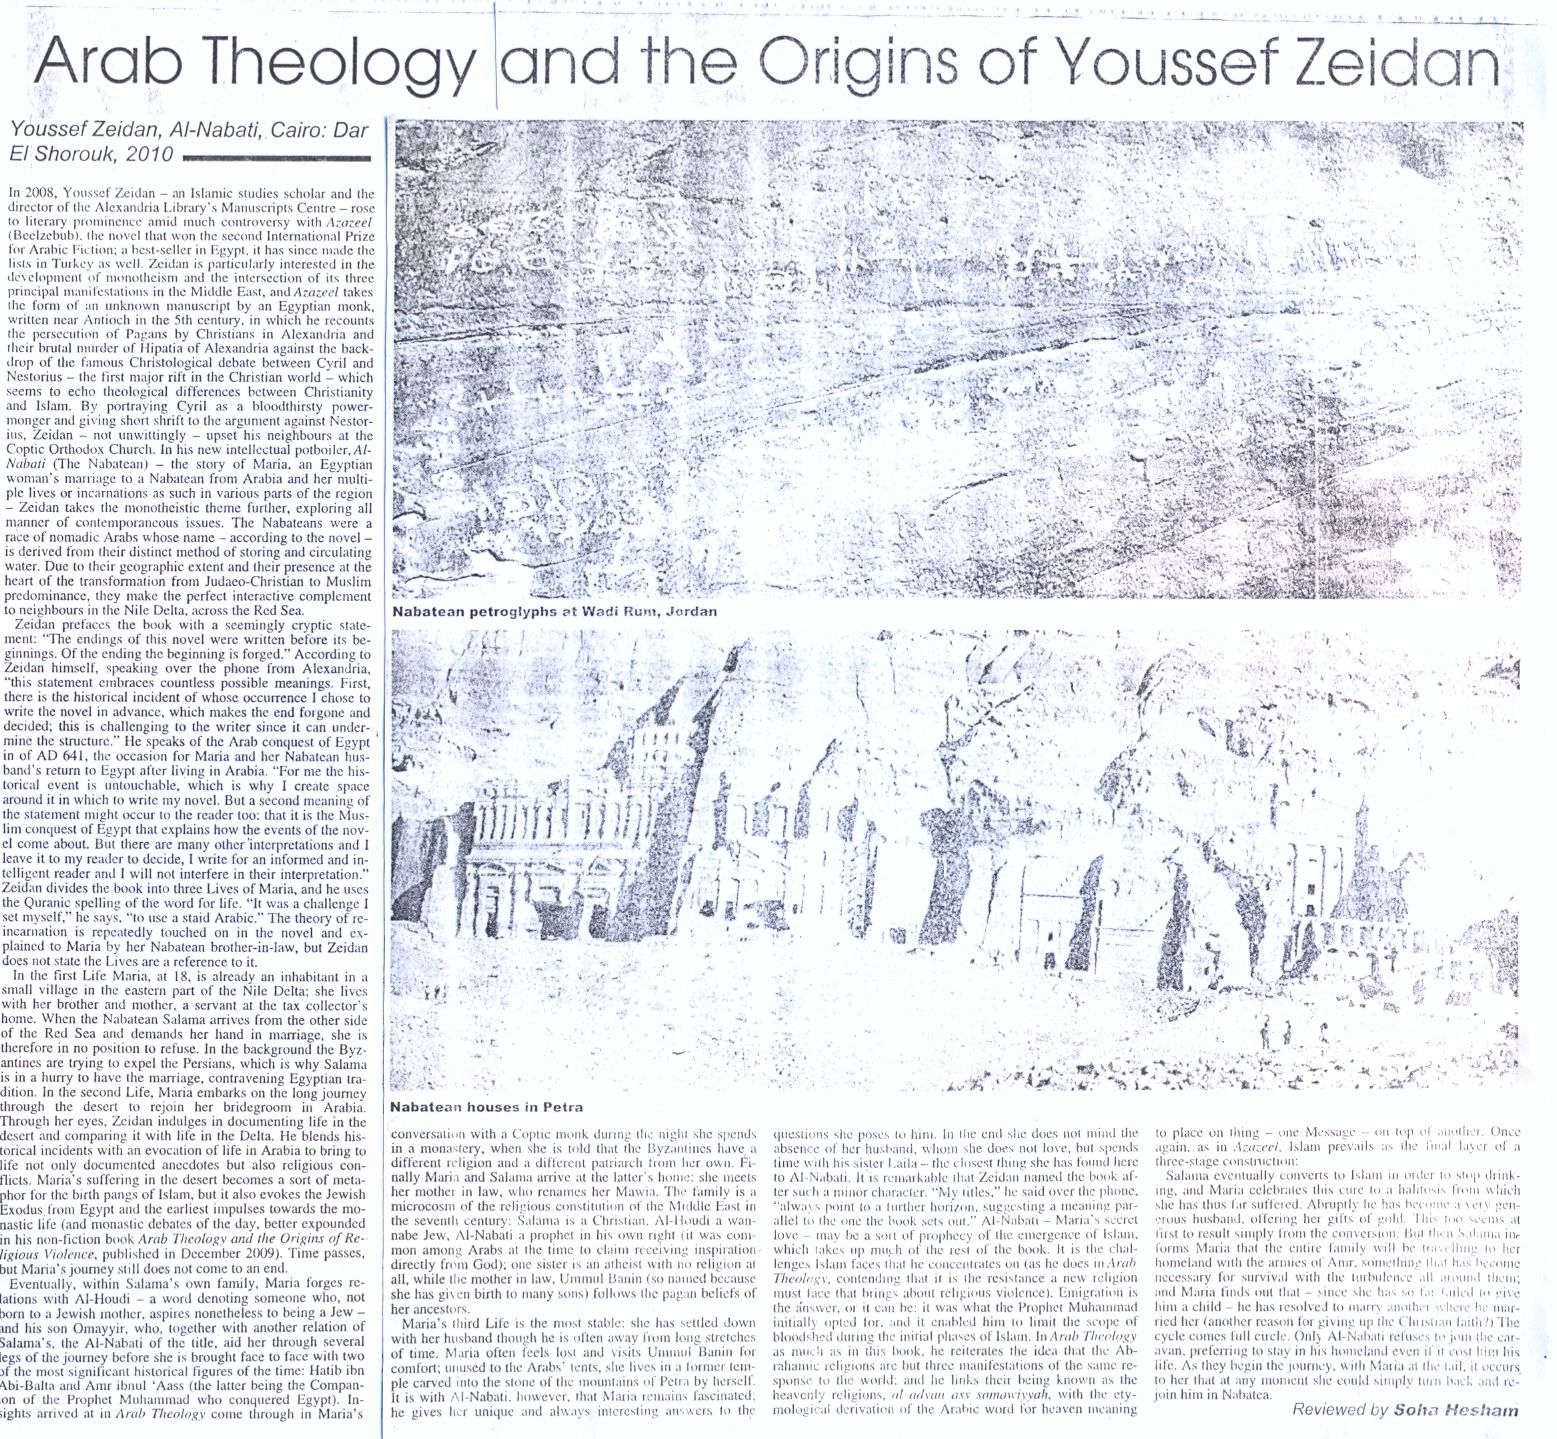 Arab Theology and the origins of Youssef Zeidan